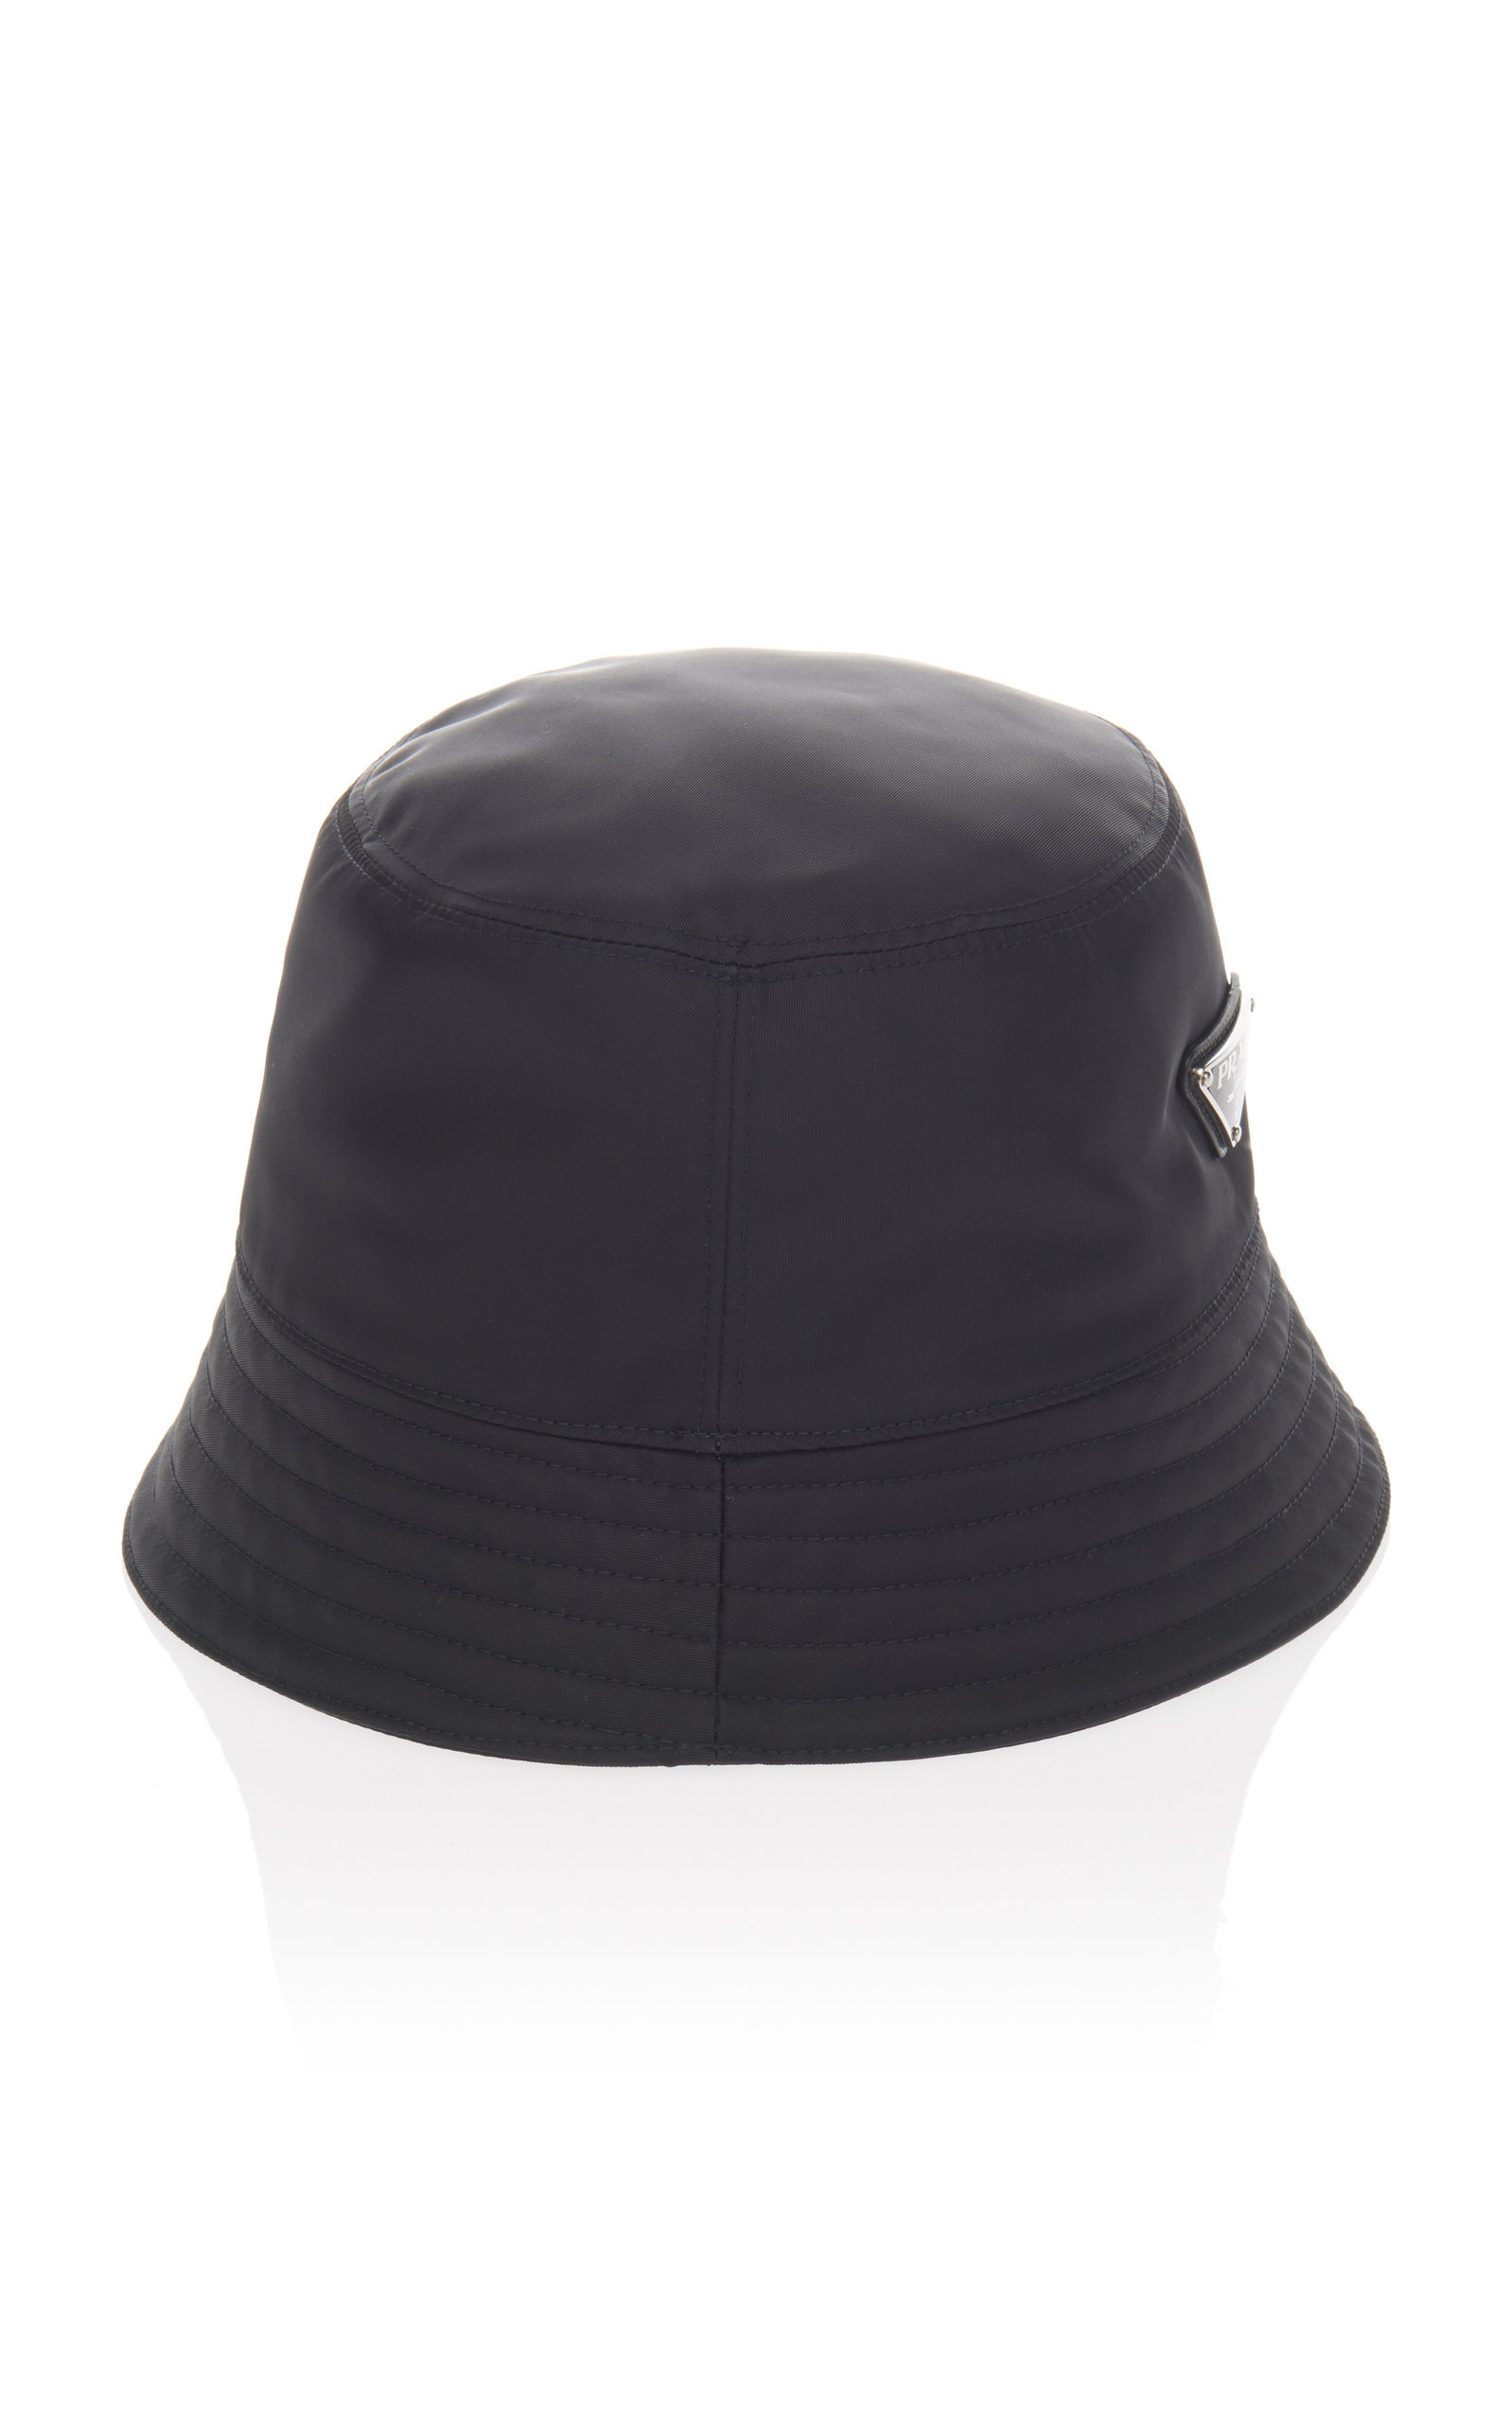 ebeceb6cc95c7 Shell Bucket Hat by Prada